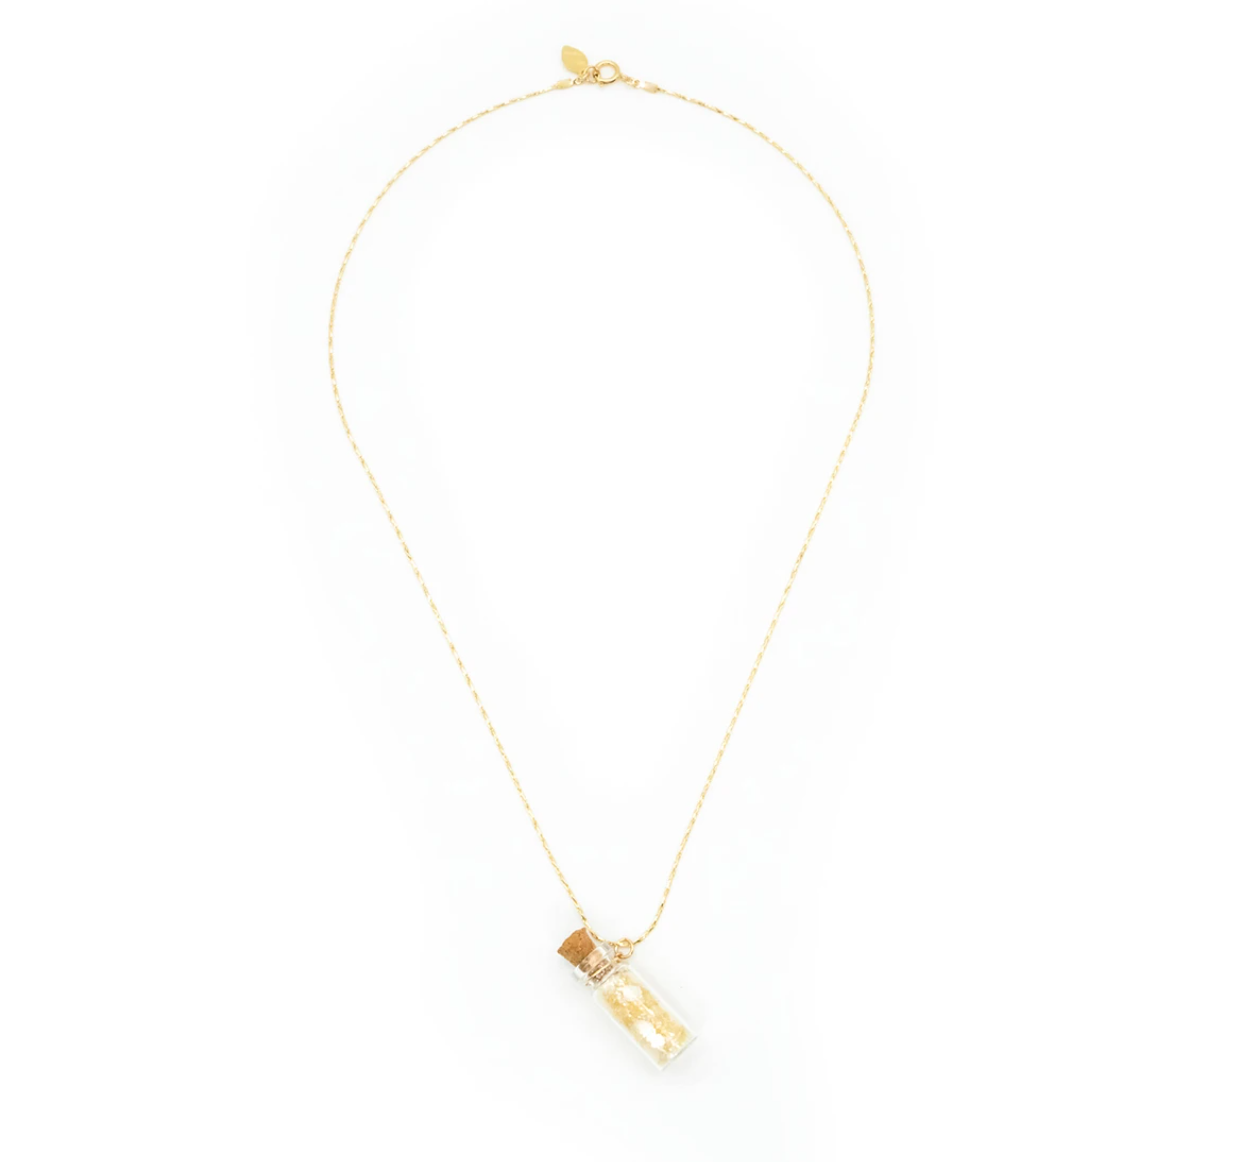 Gold Filled Necklace - Pearl Jam Blend